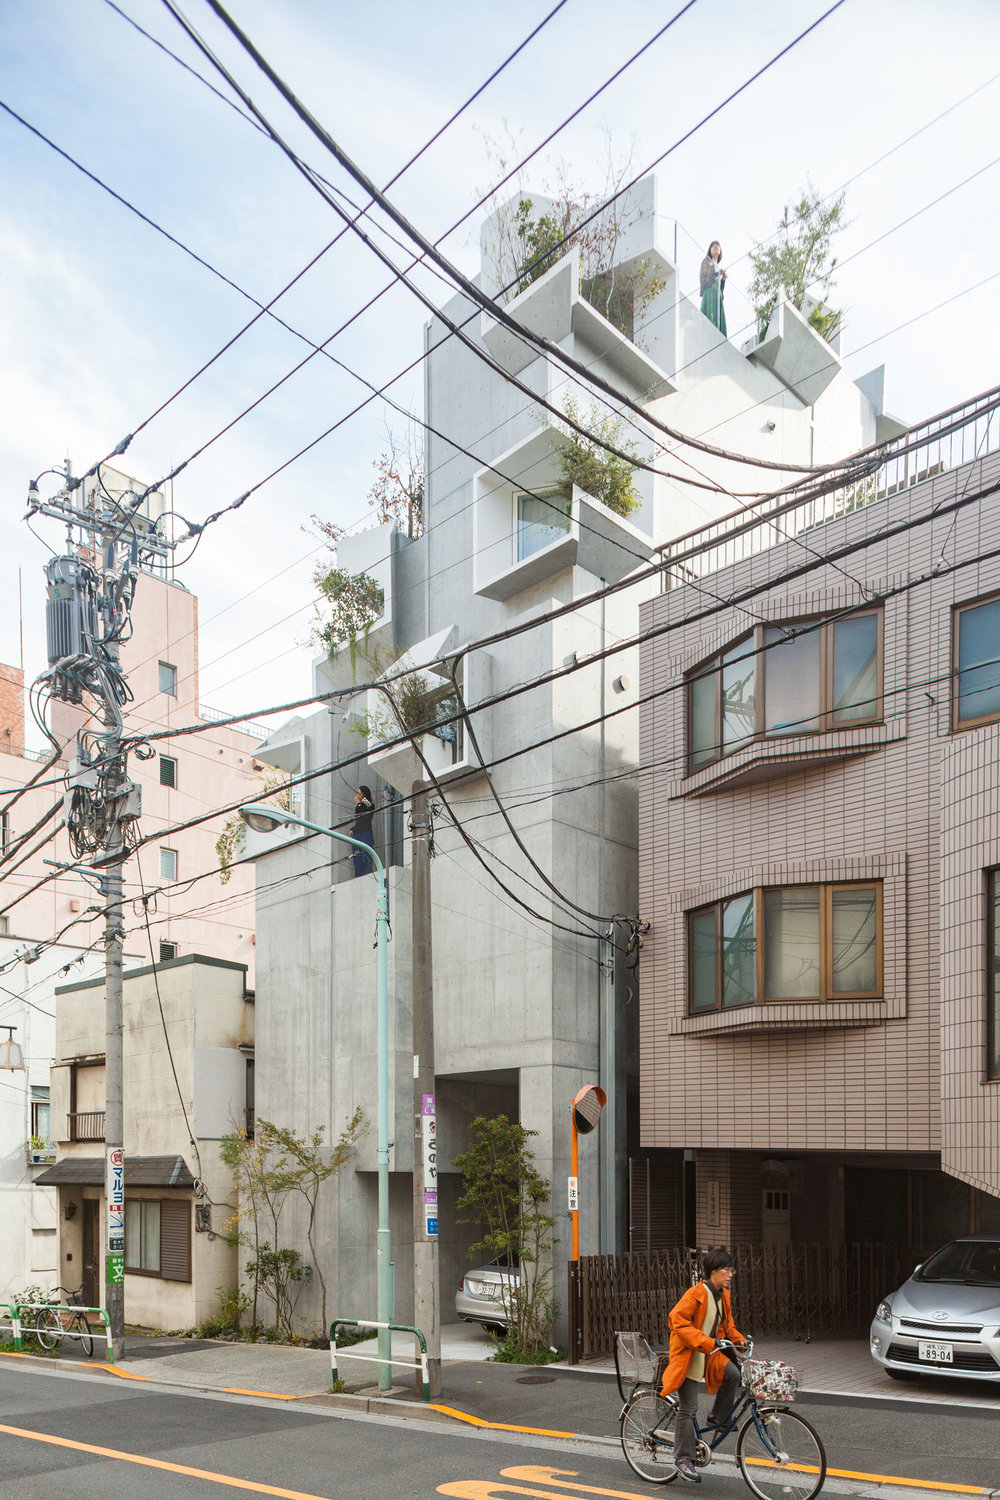 Tree-ness-House-Toshima-Japan-by-Akihisa-Hirata-Yellowtrace-03.jpg